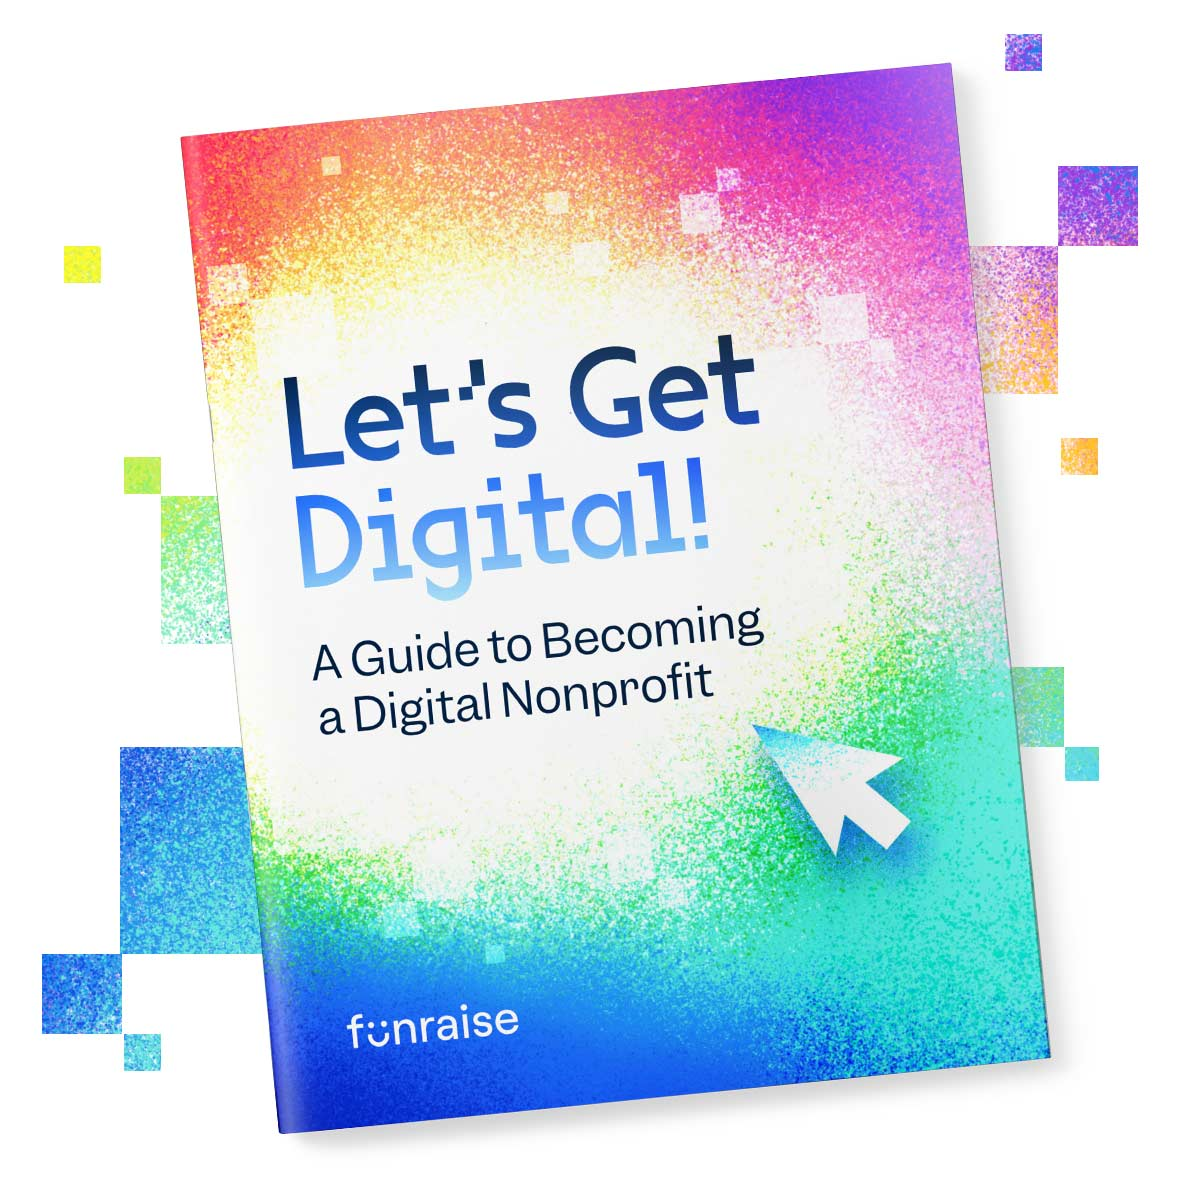 Download Funraise's Let's Get Digital! A Guide to Becoming a Digital Nonprofit